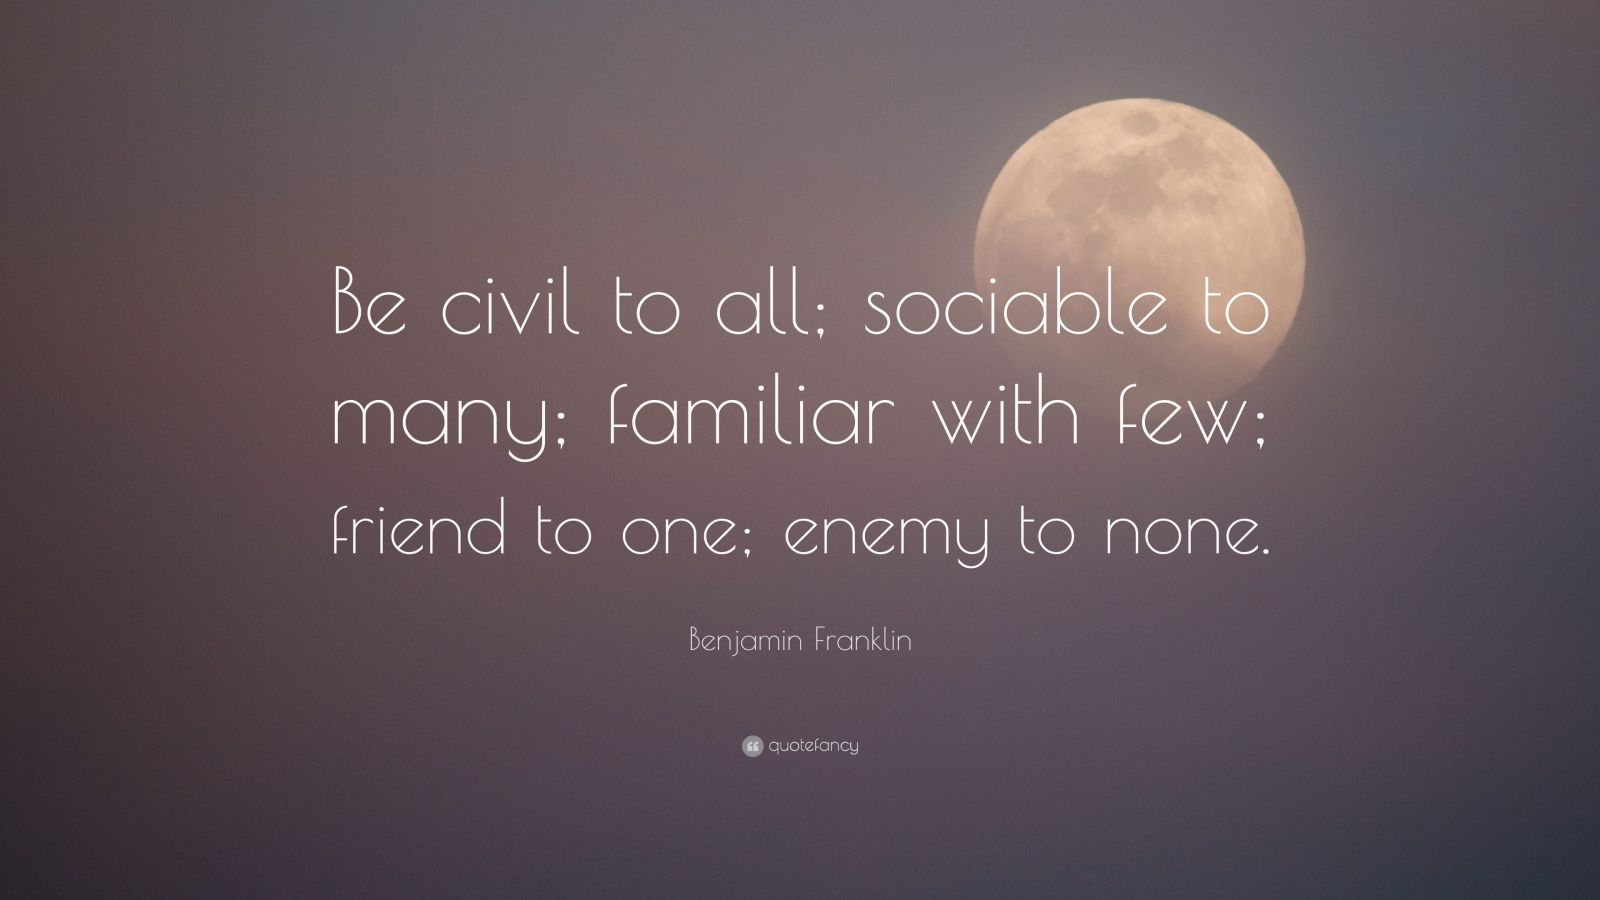 """Benjamin Franklin Quote: """"Be civil to all; sociable to many; familiar with few; friend to one; enemy to none."""""""